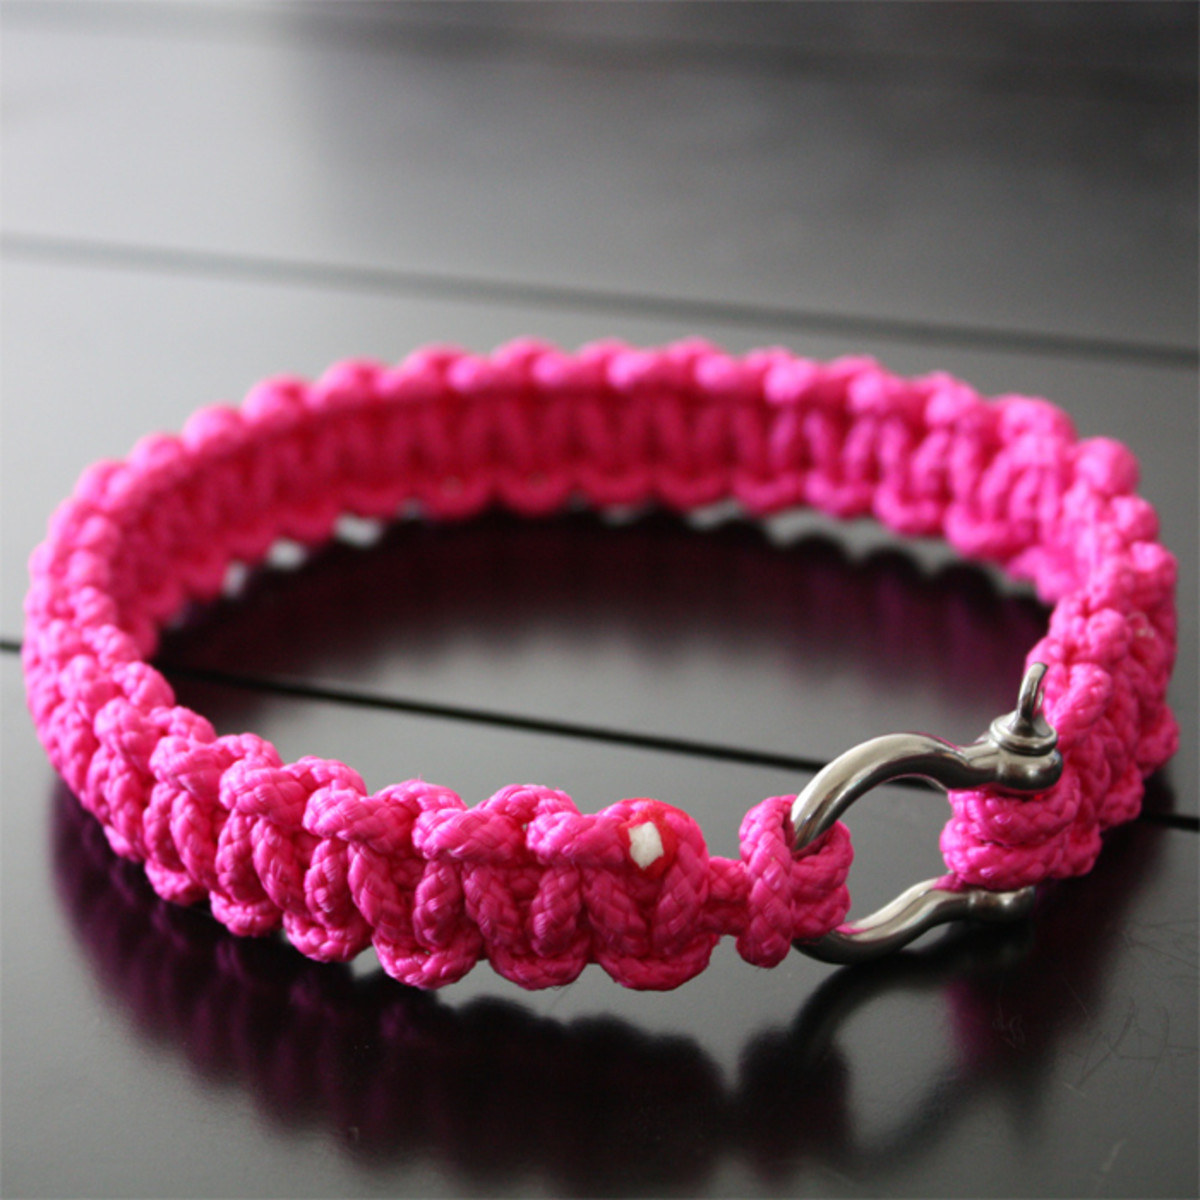 How To Make A Paracord Bracelet In Two Easy Steps Hubpages